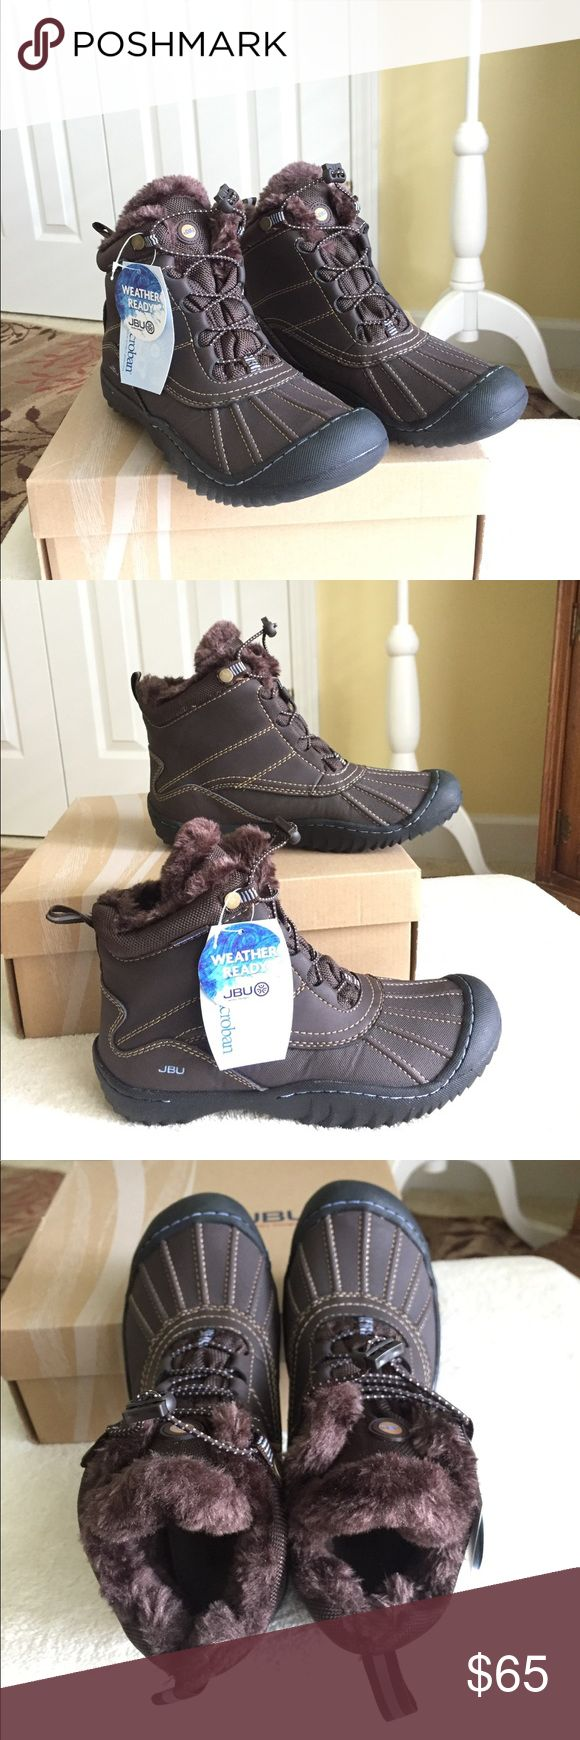 JBU Pullman Winter Booties for Women JBU Pullman Winter Booties for women. Jambu designs that is Weather Ready, with all terra traction for superior grip and durability & antibacterial footbed for breathable all day comfort. New with box. Color - brown. Size 7 women. Jambu Shoes Winter & Rain Boots